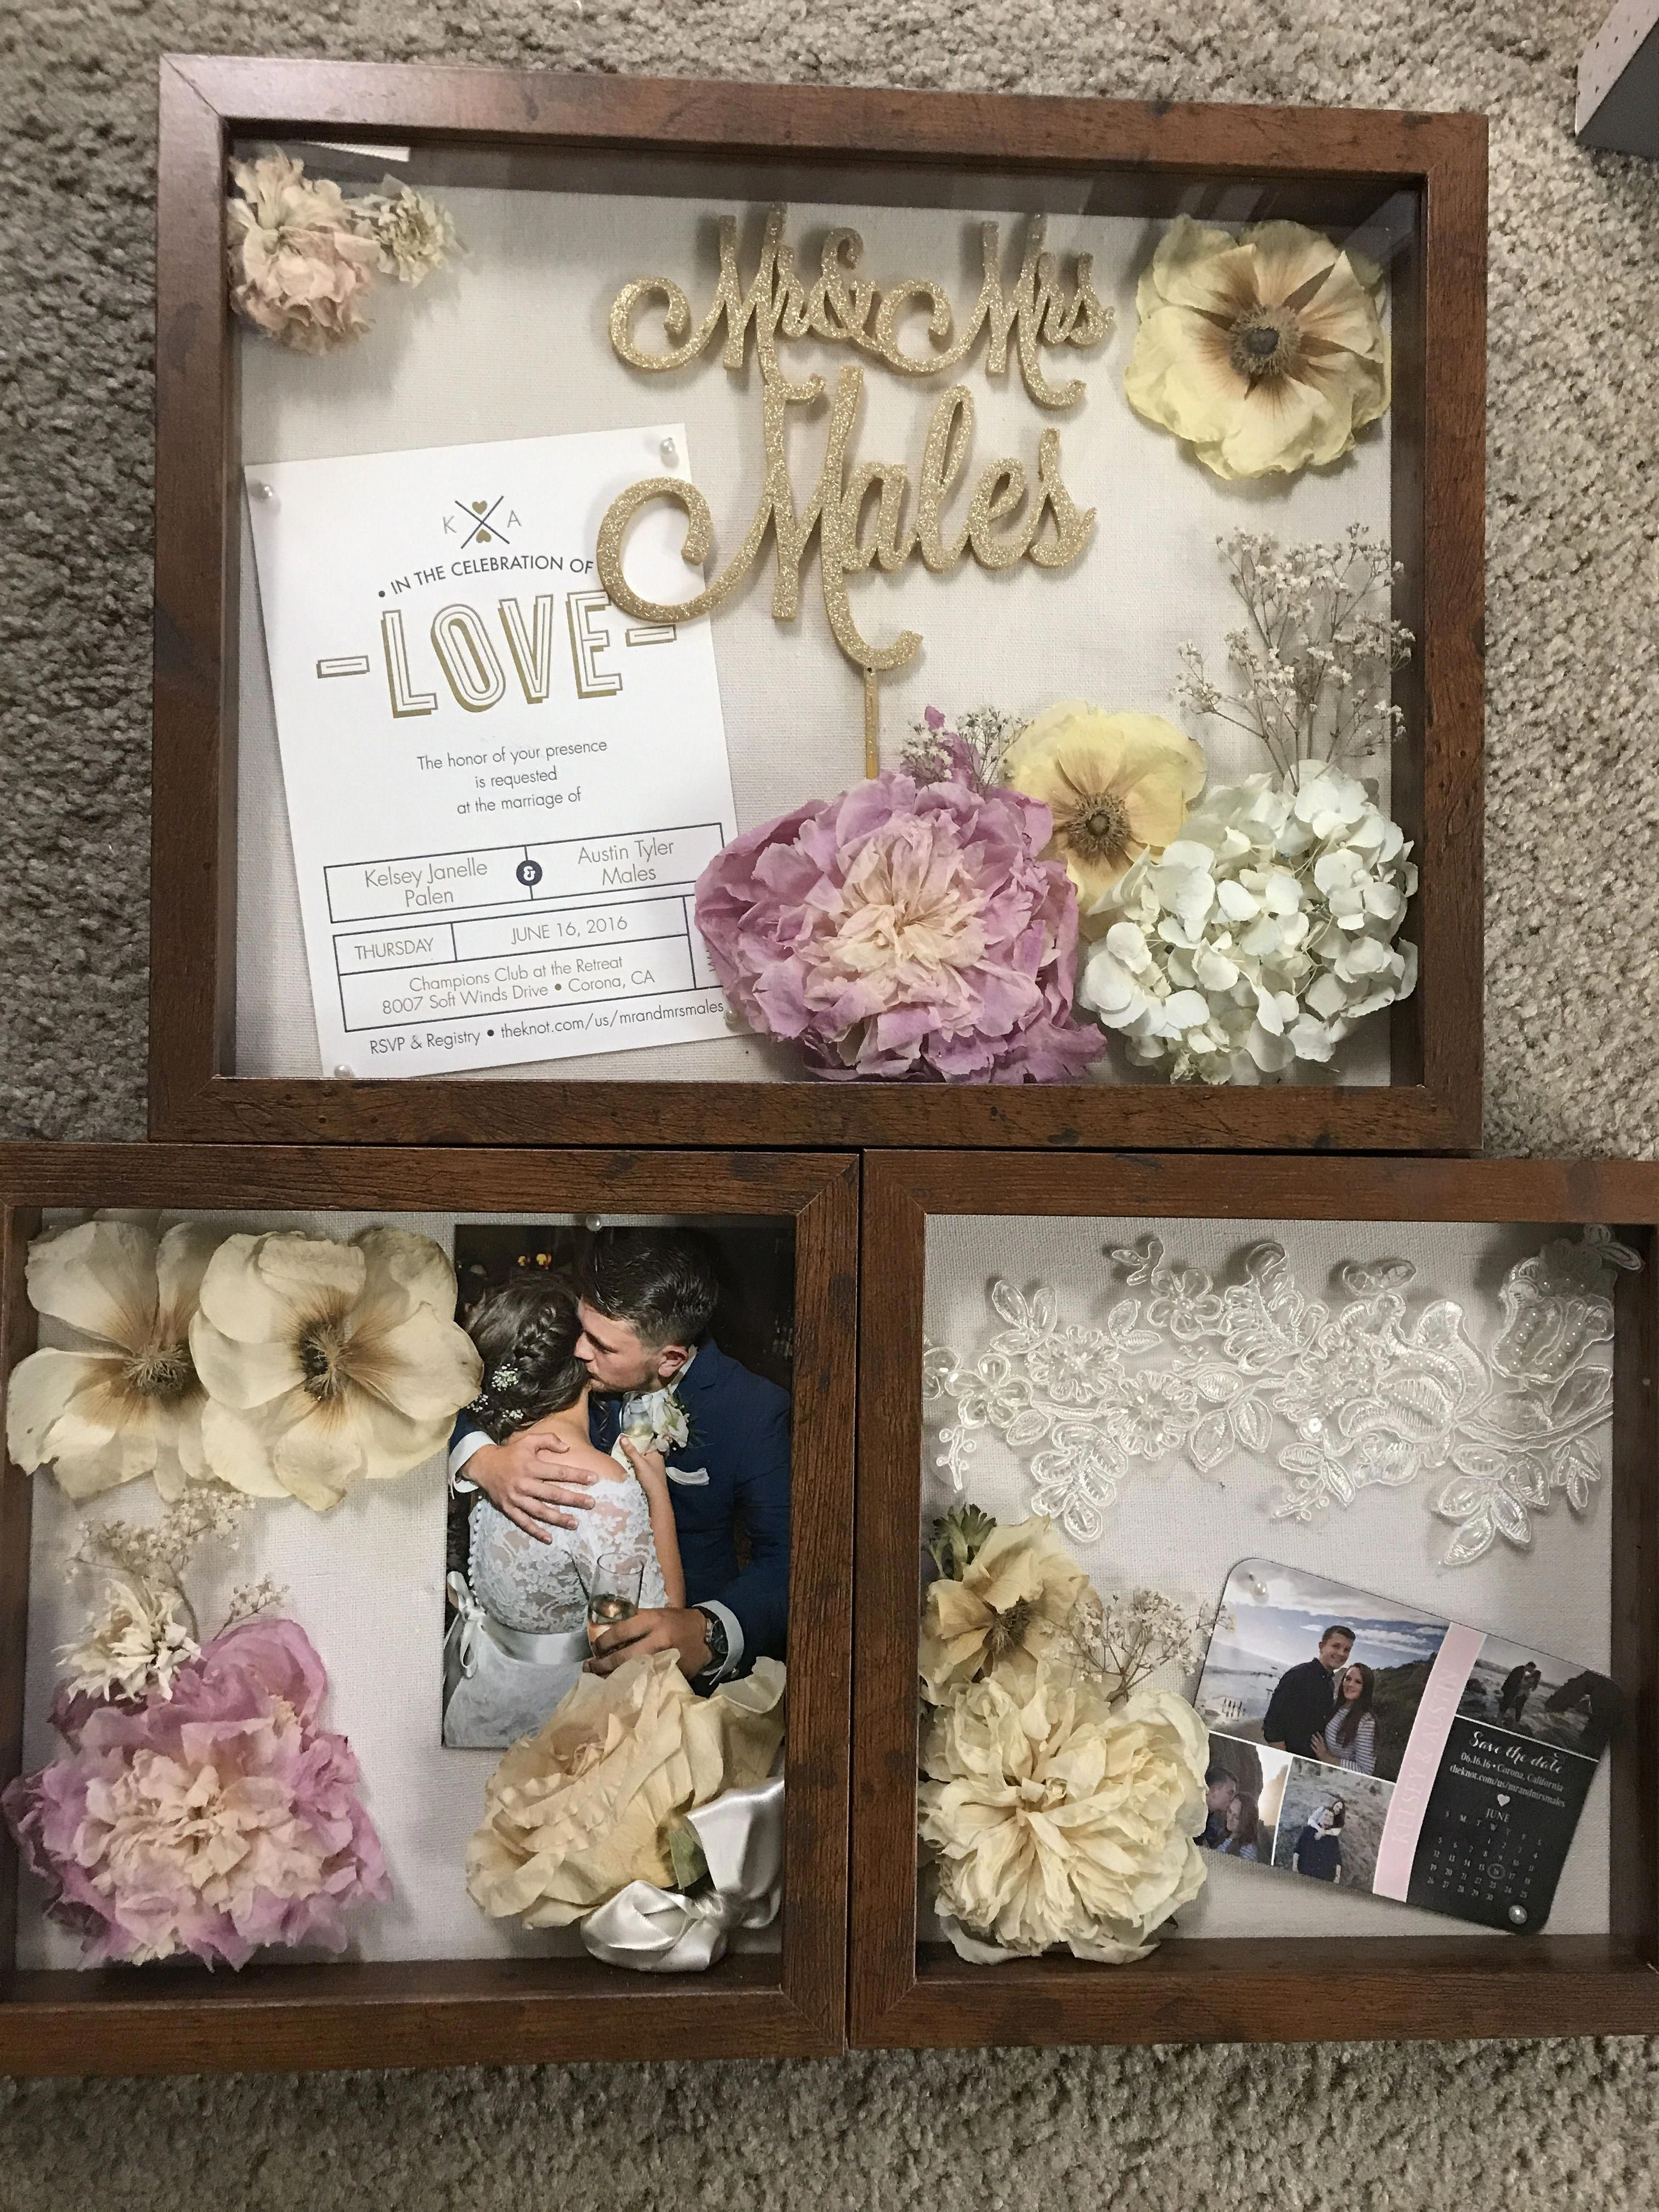 Pin By Kse On Anniversary Party Wedding Shadow Box Wedding Boxes Wedding Thank You Gifts